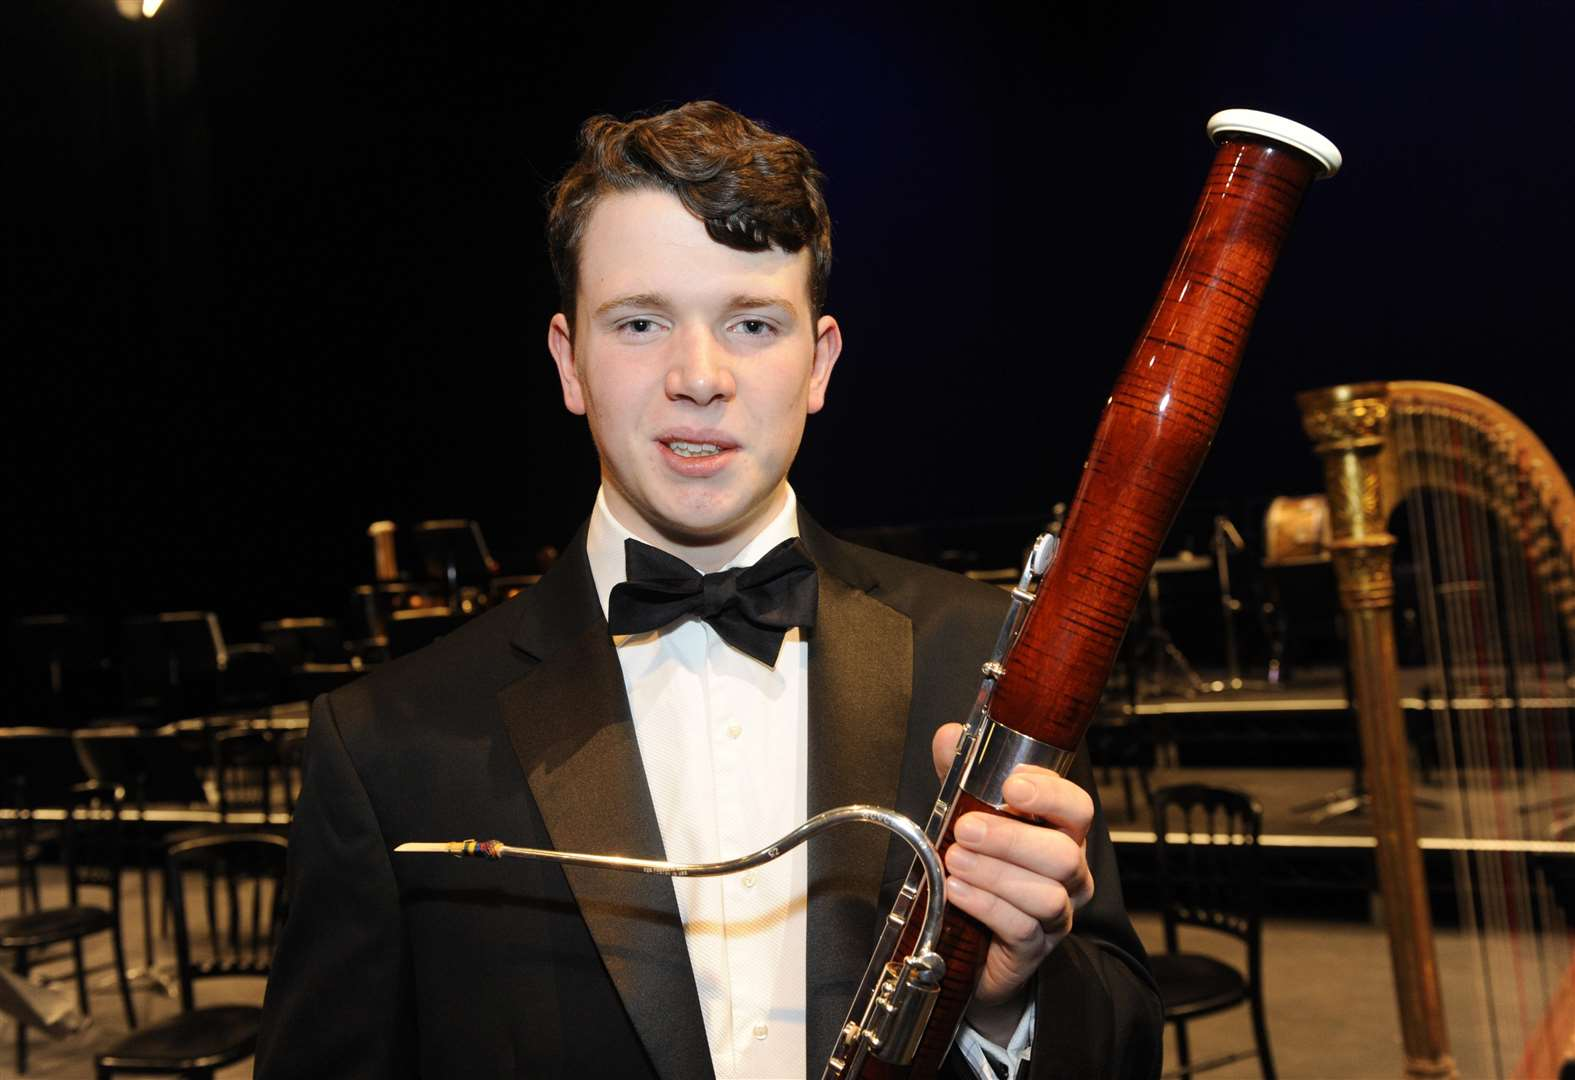 Chilton church stages bassoon concert to raise money for new installation